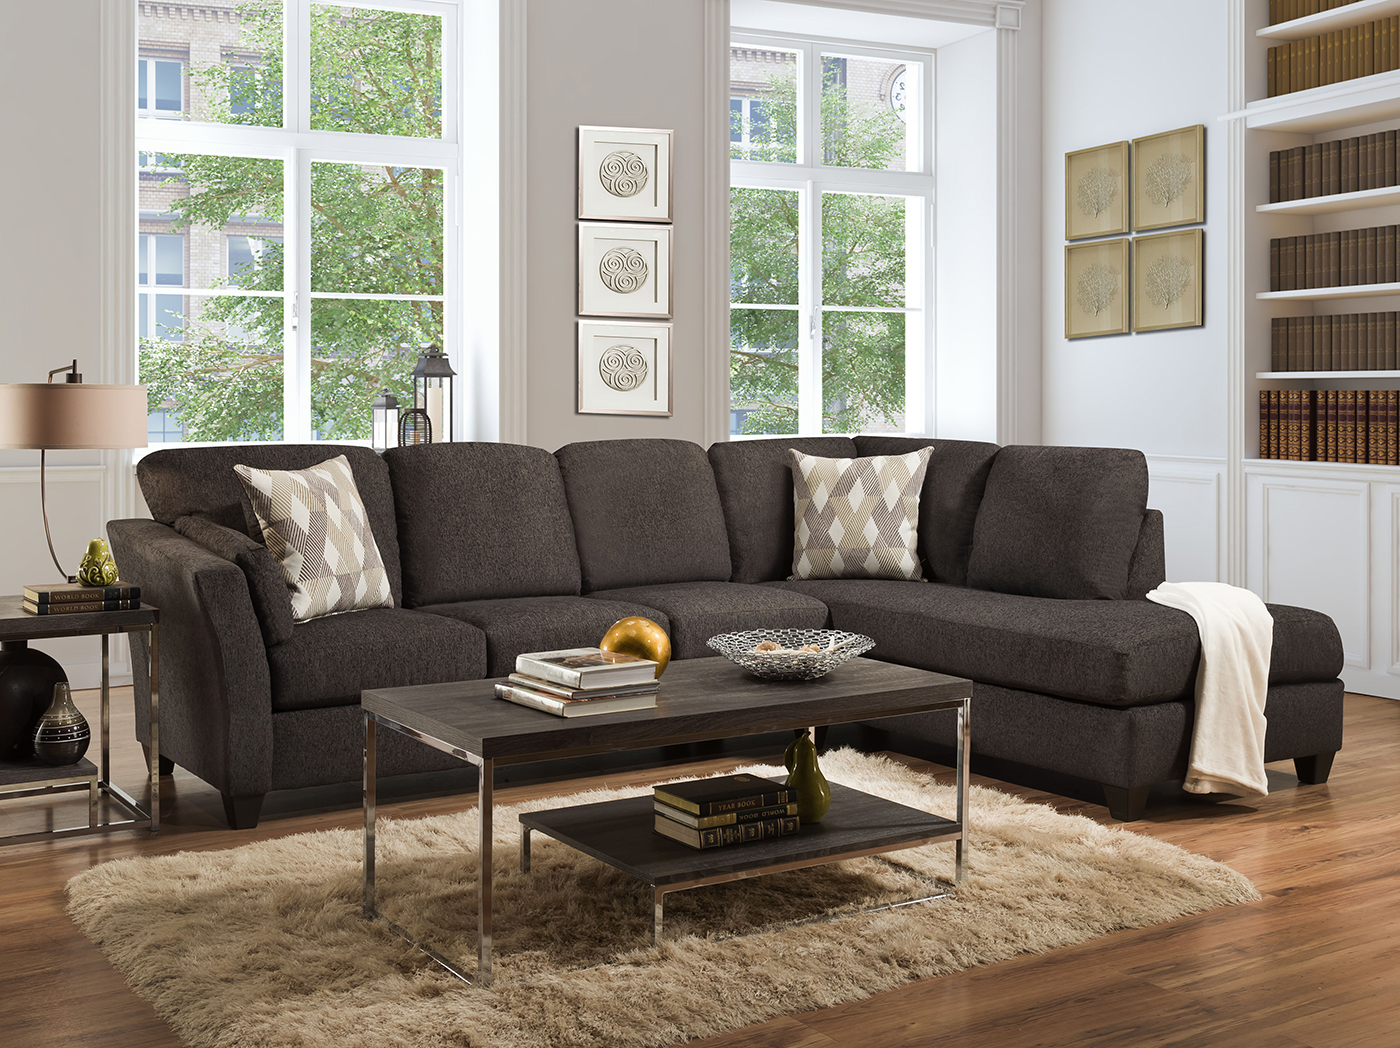 Wynn 2-Pc. Sectional